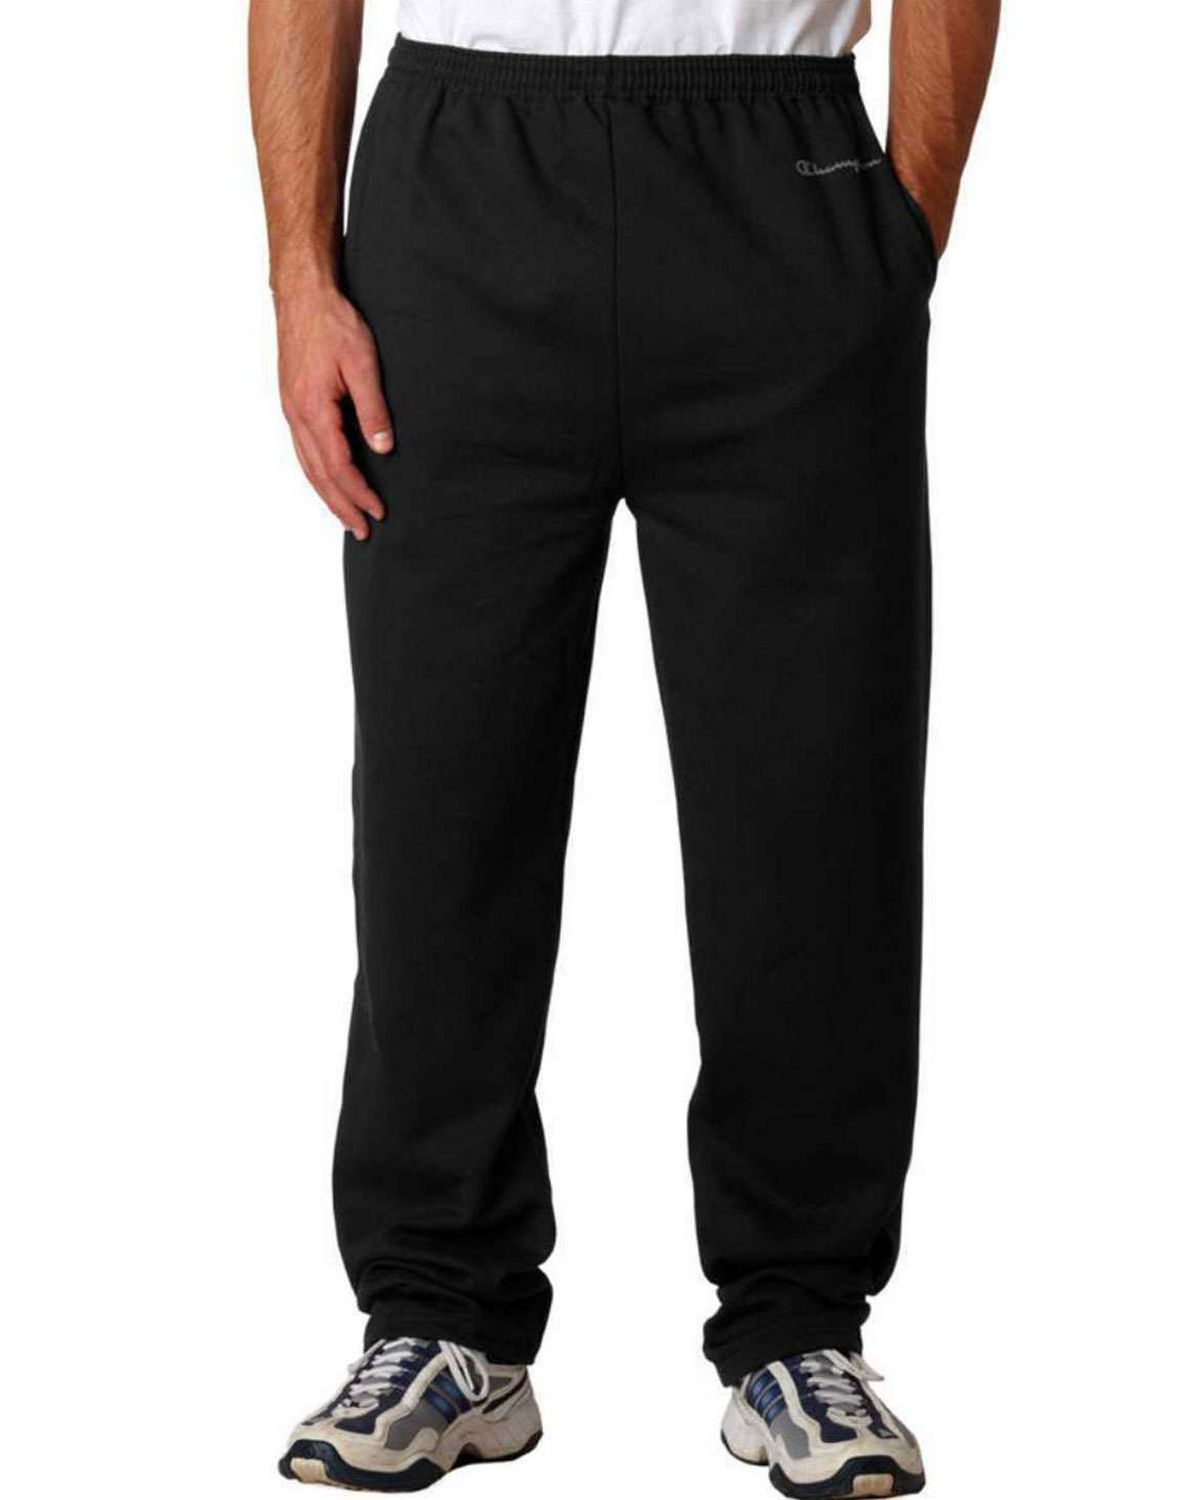 Champion S245 CH Open Bottom Pant - Black - S S245